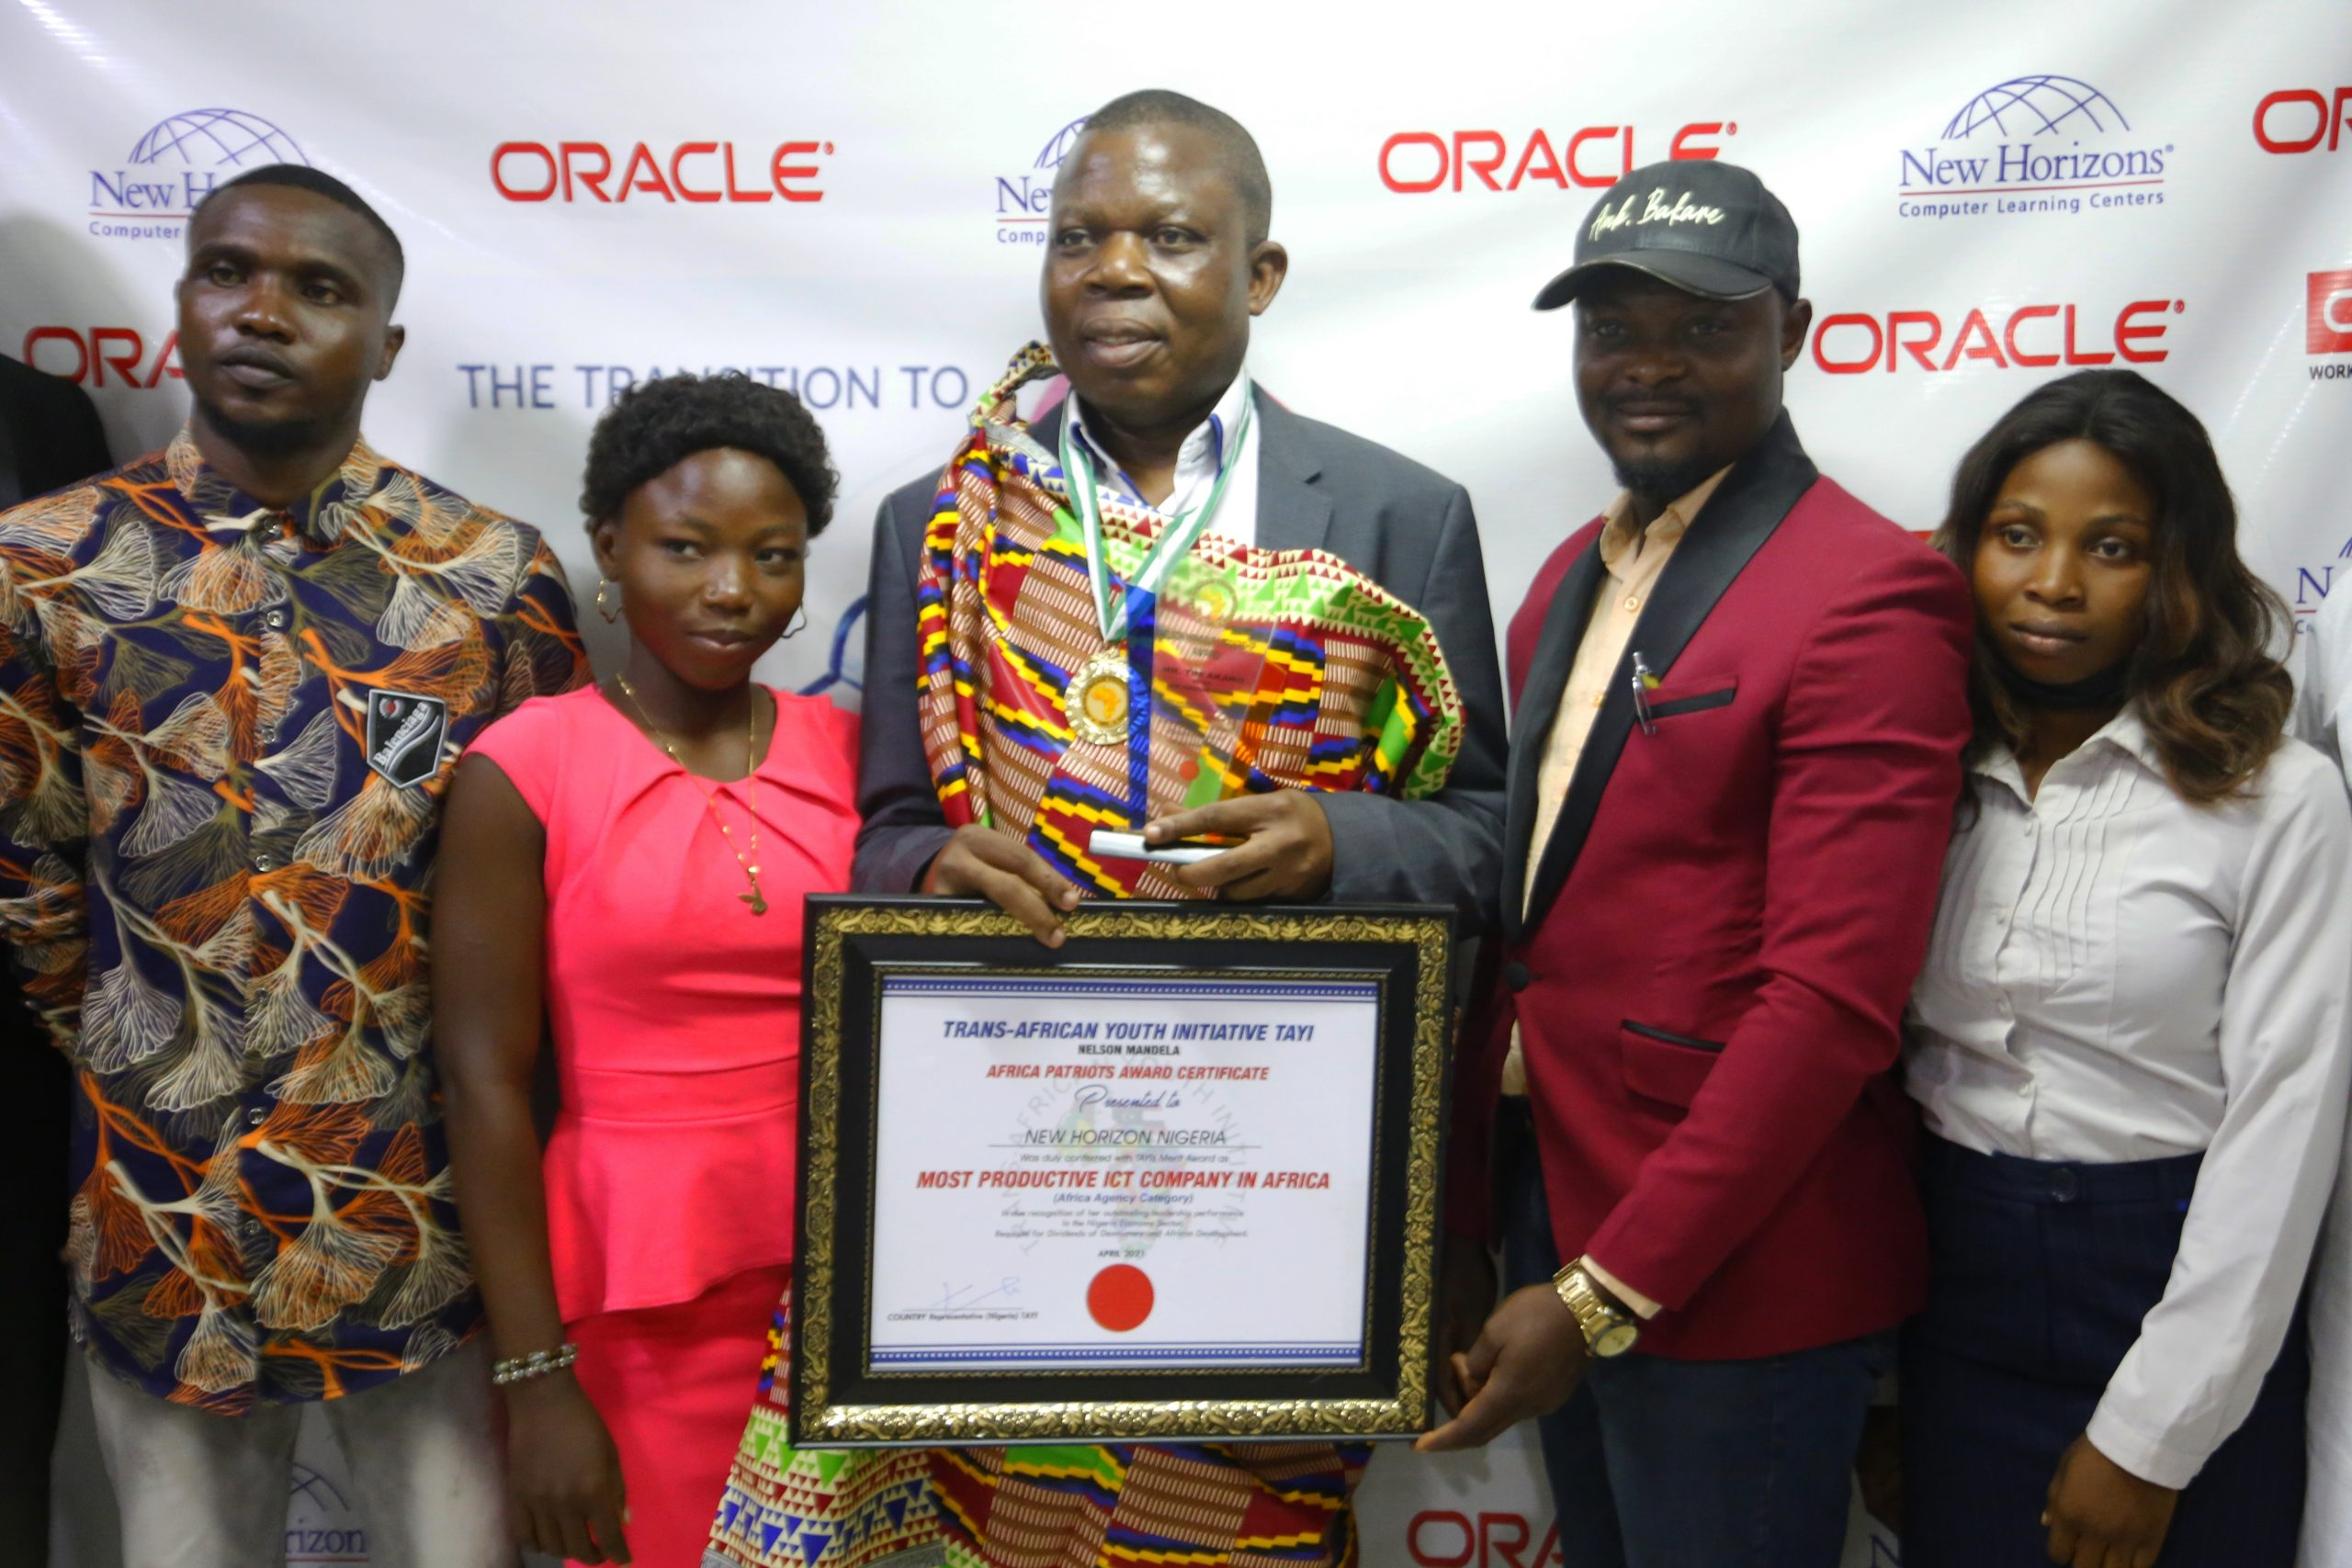 Trans-African Youth Initiative Honours Tim Akano and New Horizons With Awards, SiliconNigeria